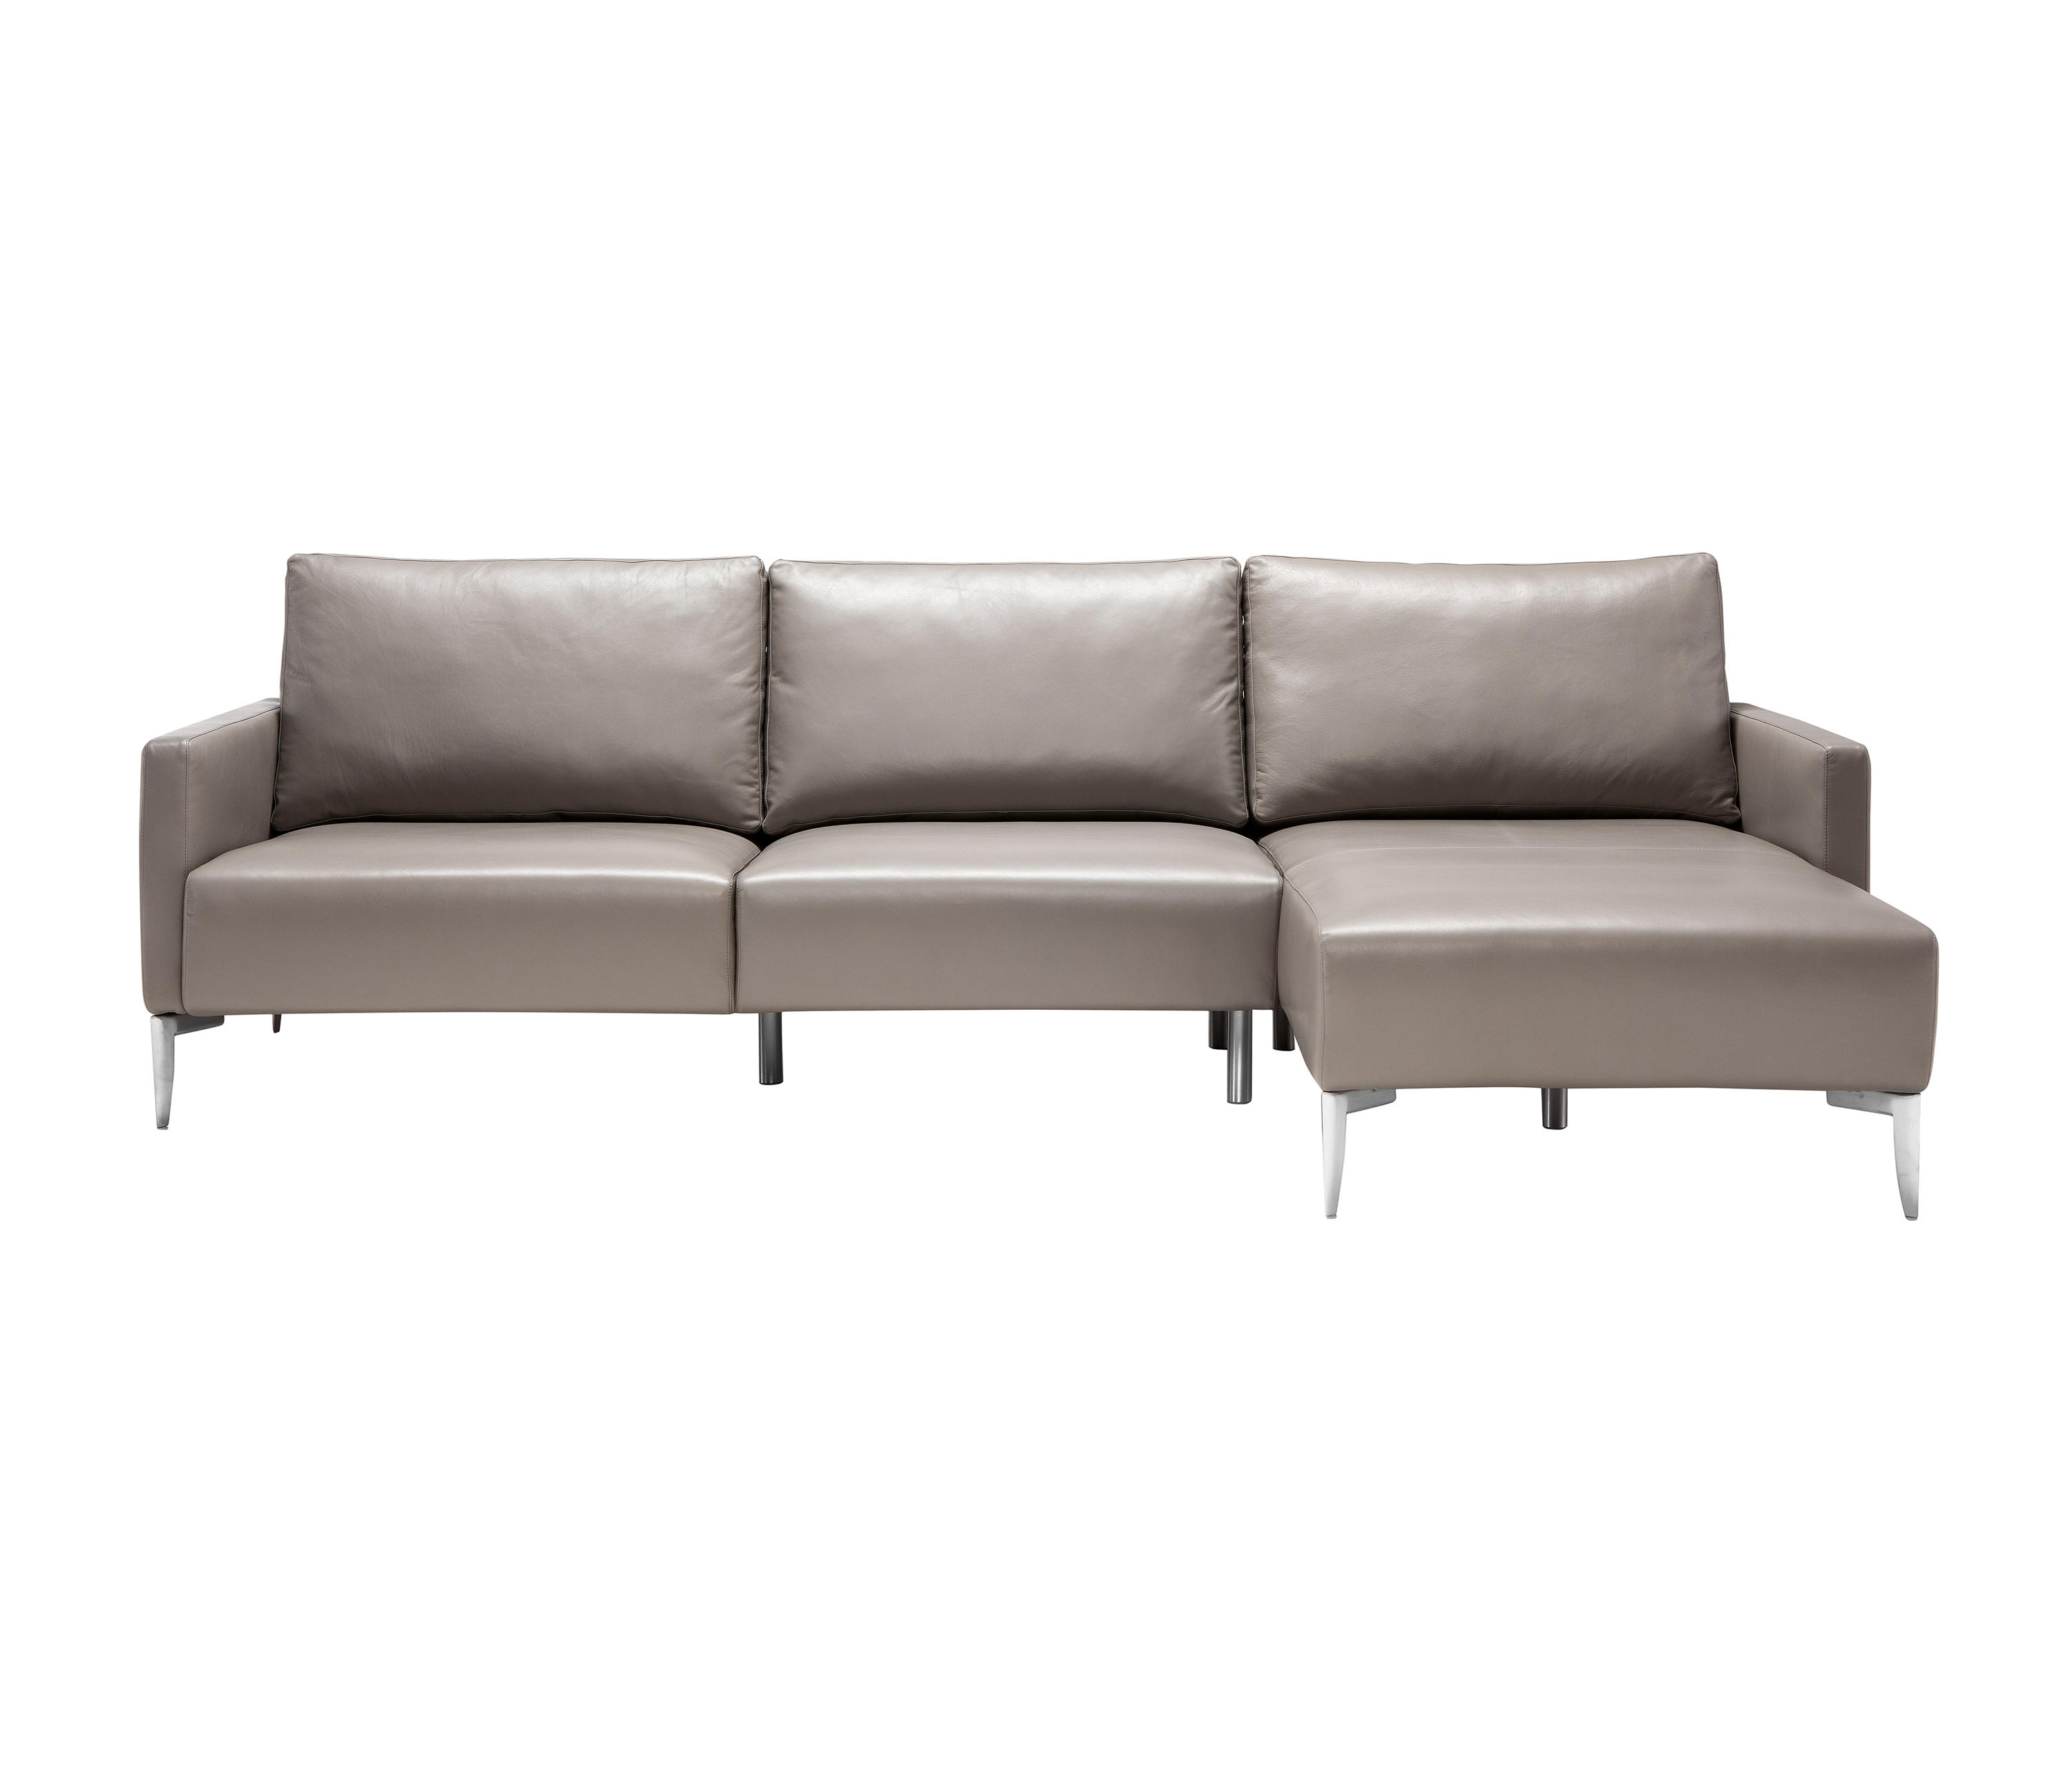 Prime Amalfi Sofas From Amura Architonic Uwap Interior Chair Design Uwaporg